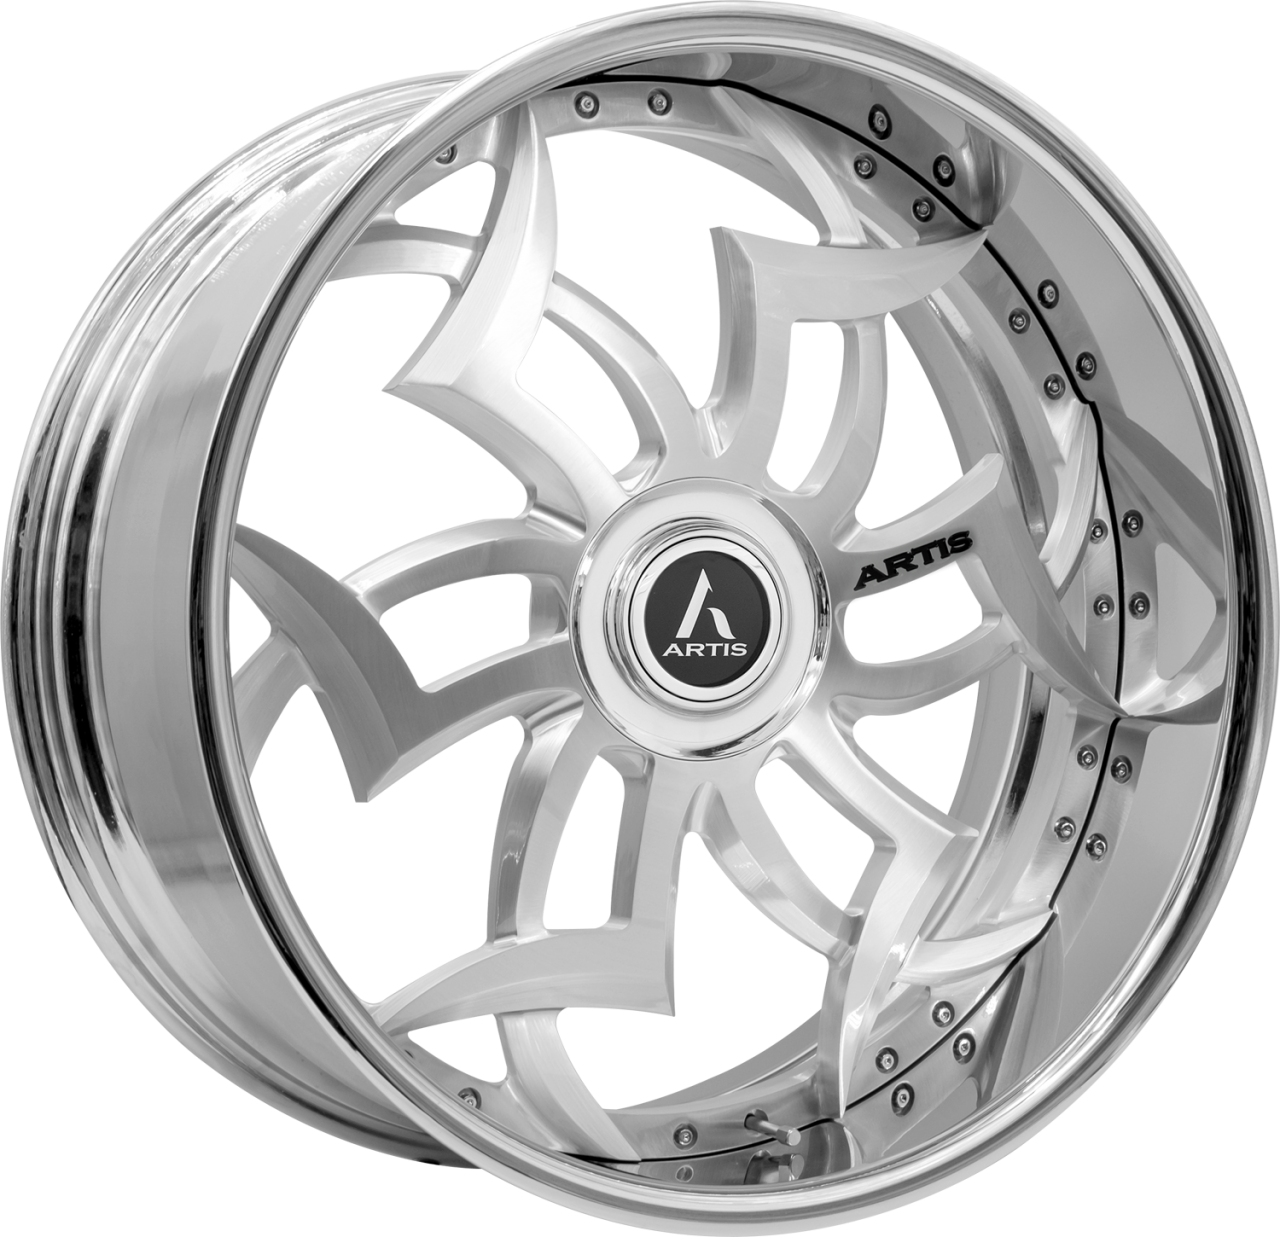 Artis Forged Medusa wheel with Brushed with XL Floater Cap finish